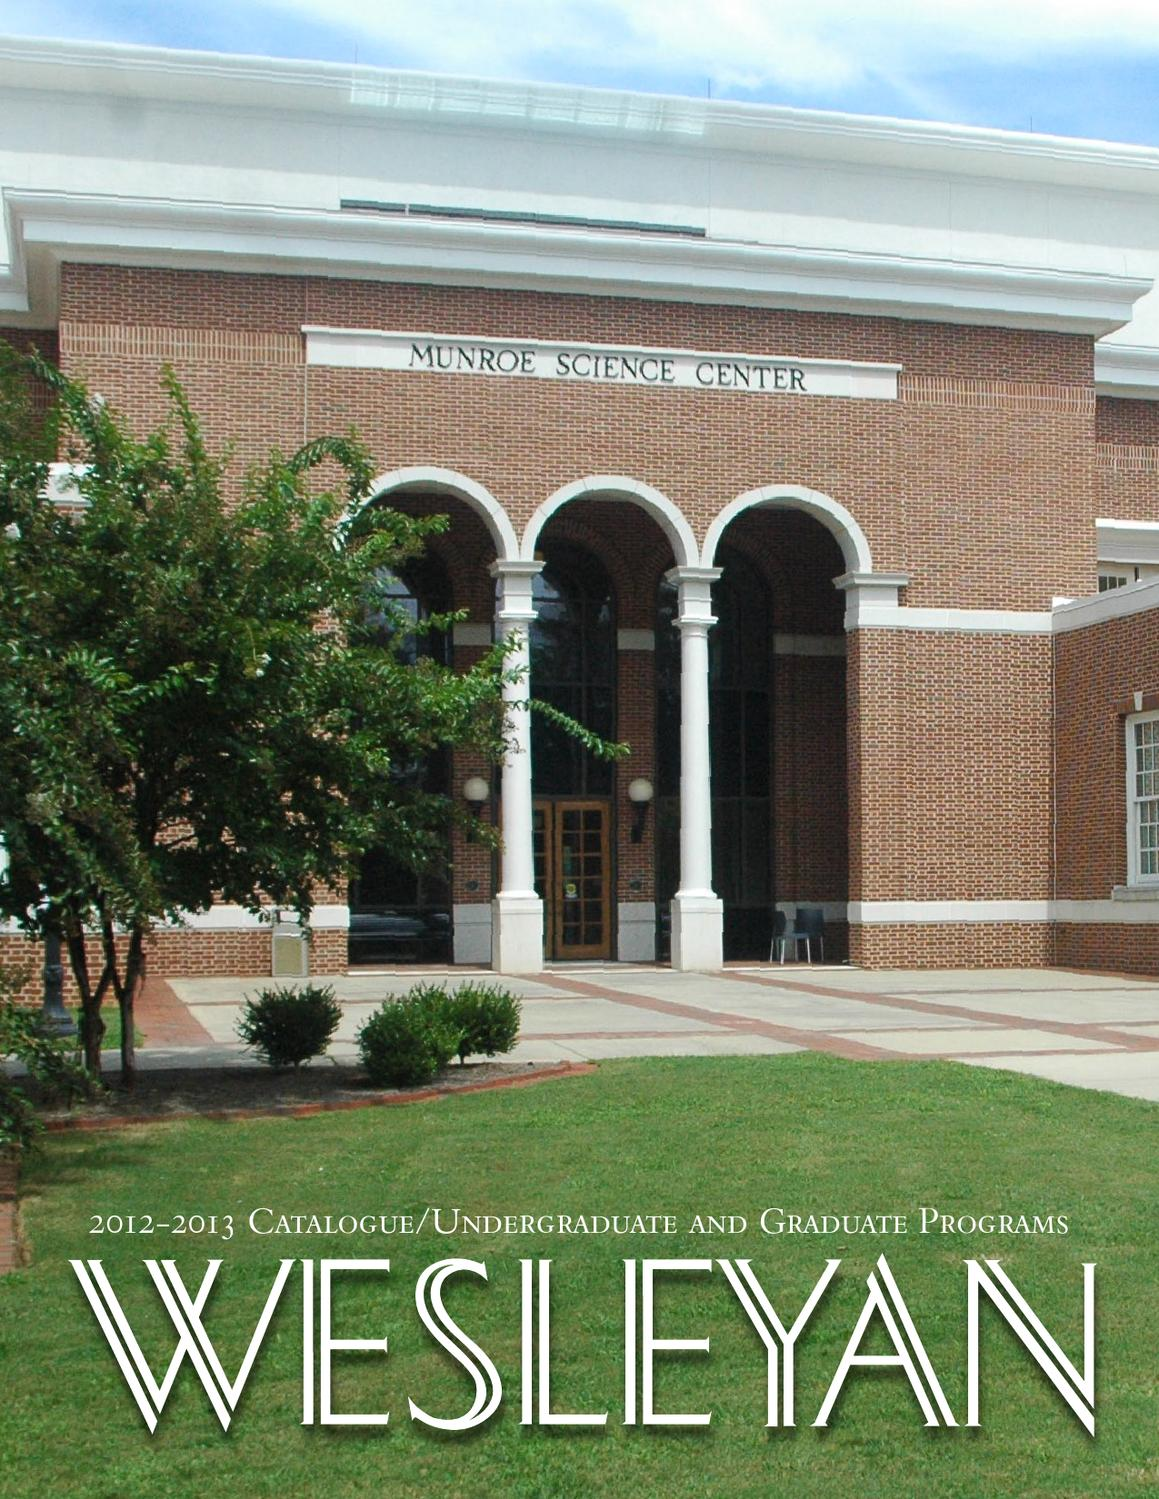 comp 112 wesleyan investment